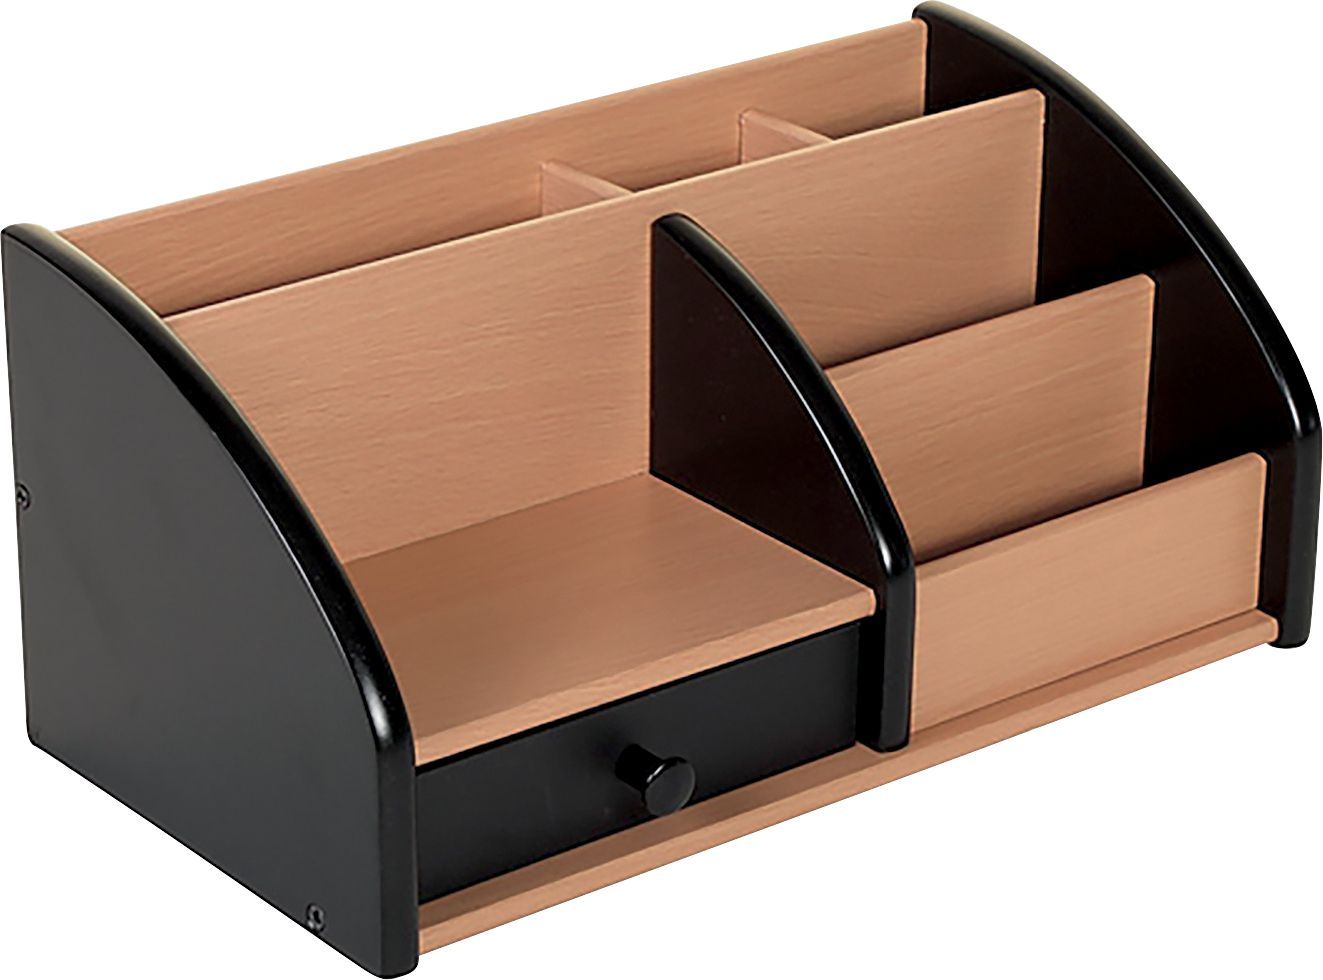 Osco wooden desk organiser black and beech stationary pen storage holder ebay - Desk stationery organiser ...